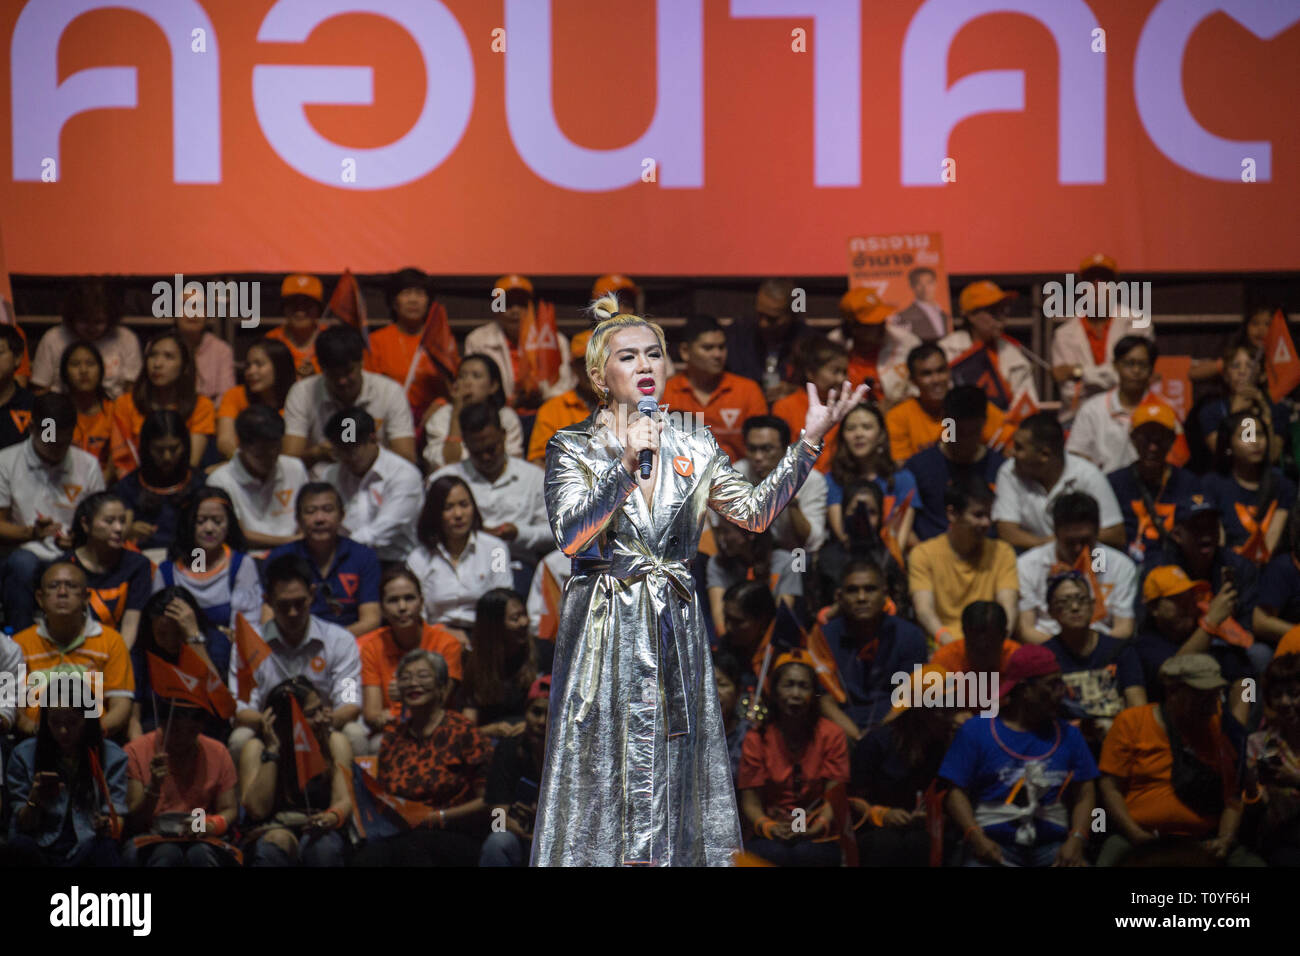 Bangkok, Thailand. 22nd Mar, 2019. Transgender Thanyawin Sukasapisit speaks during the Future Forward Party latest rally before the Thai General Election at the Thai-Japanese Stadium in Bangkok.The country will hold the general election on March 24, 2019, five years after the May 2014 military coup by Junta chief Prayut Chan-o-cha. Credit: Guillaume Payen/SOPA Images/ZUMA Wire/Alamy Live News Stock Photo